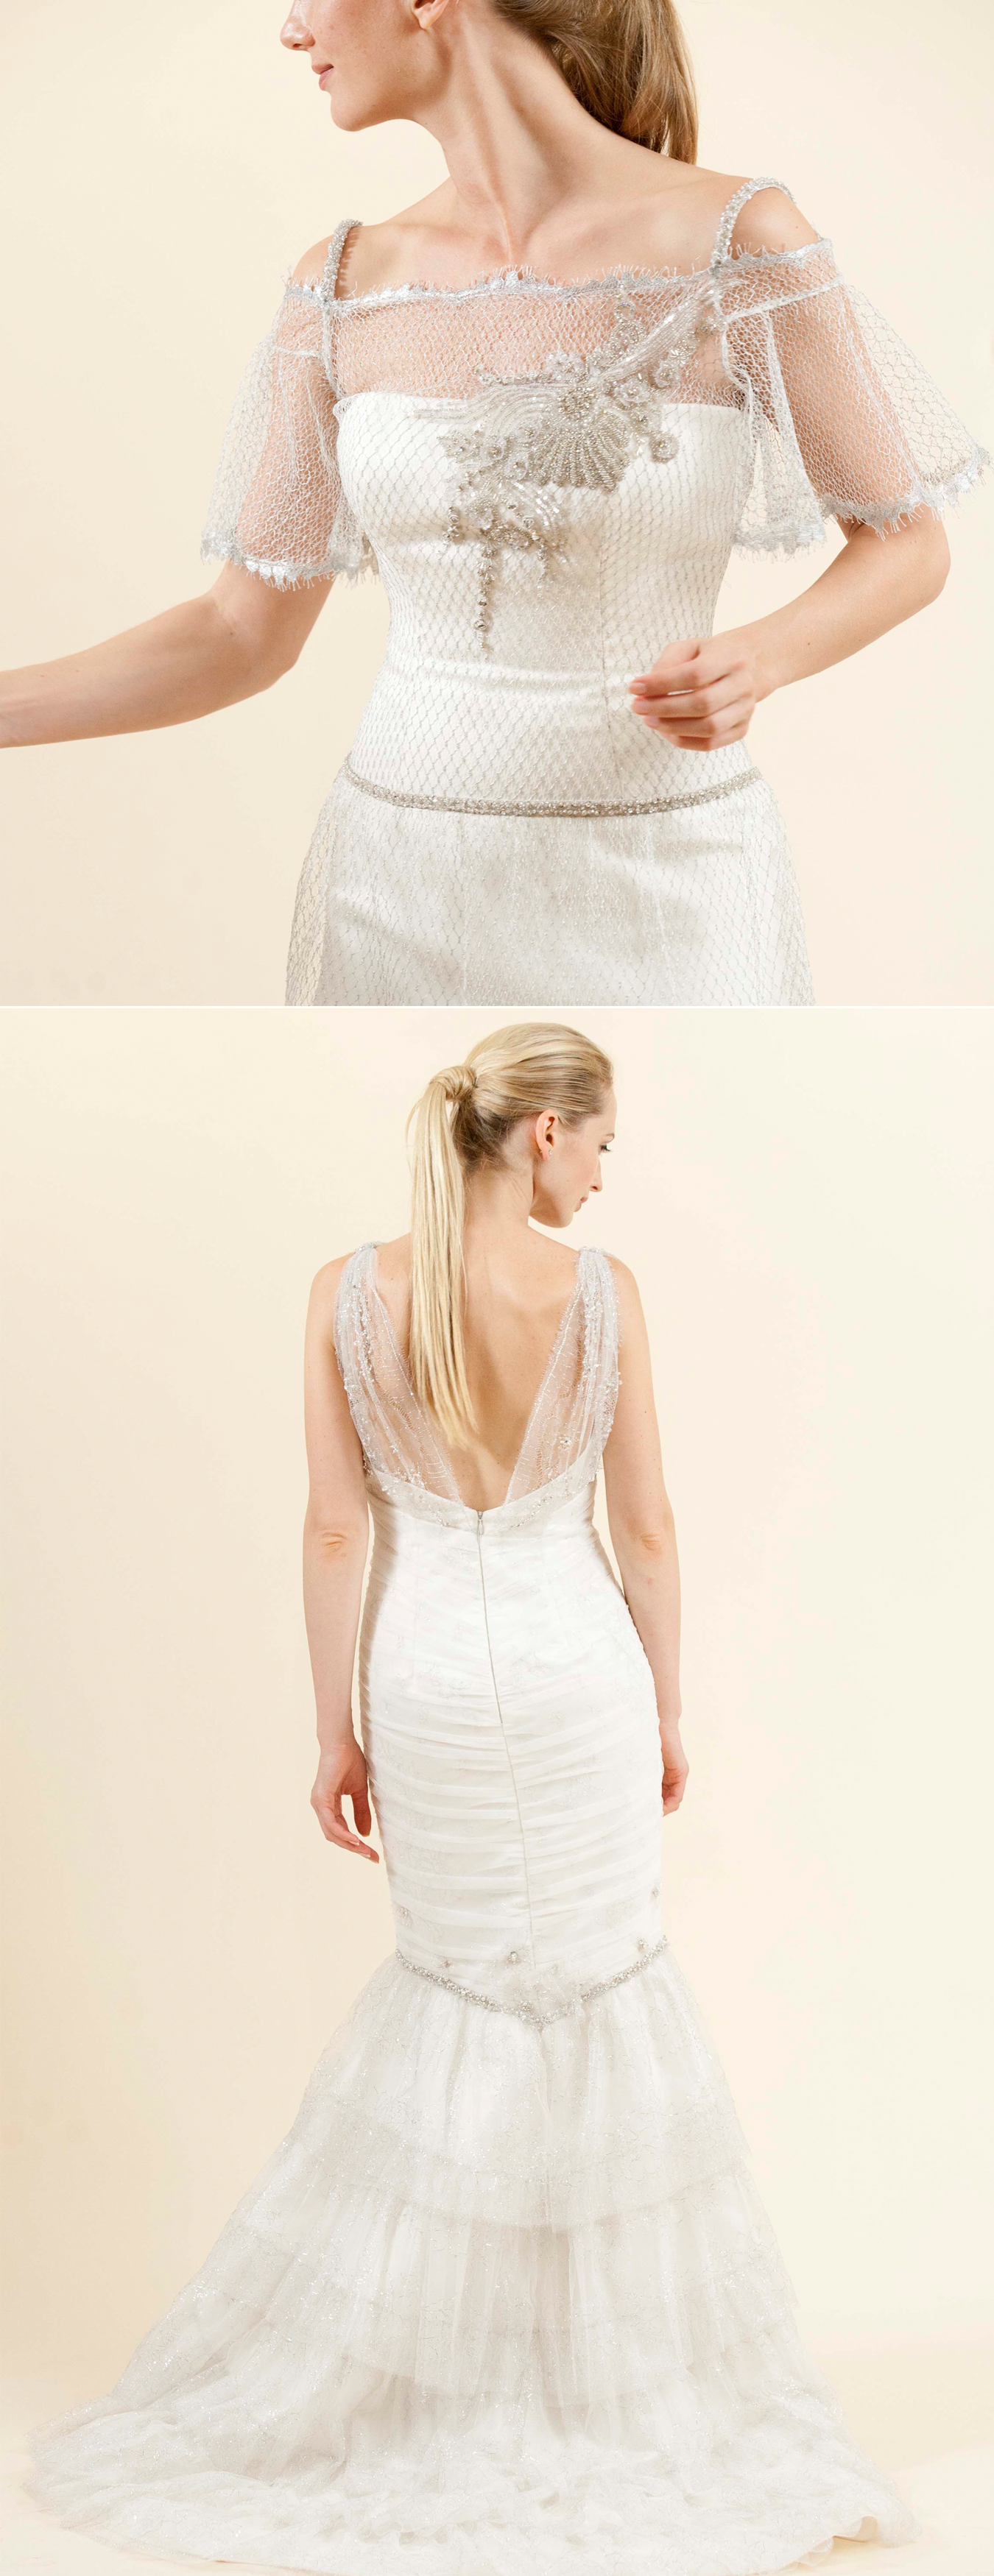 Coco-vochi-wedding-dress-2012-mermaid-bridal-gown-beaded.original